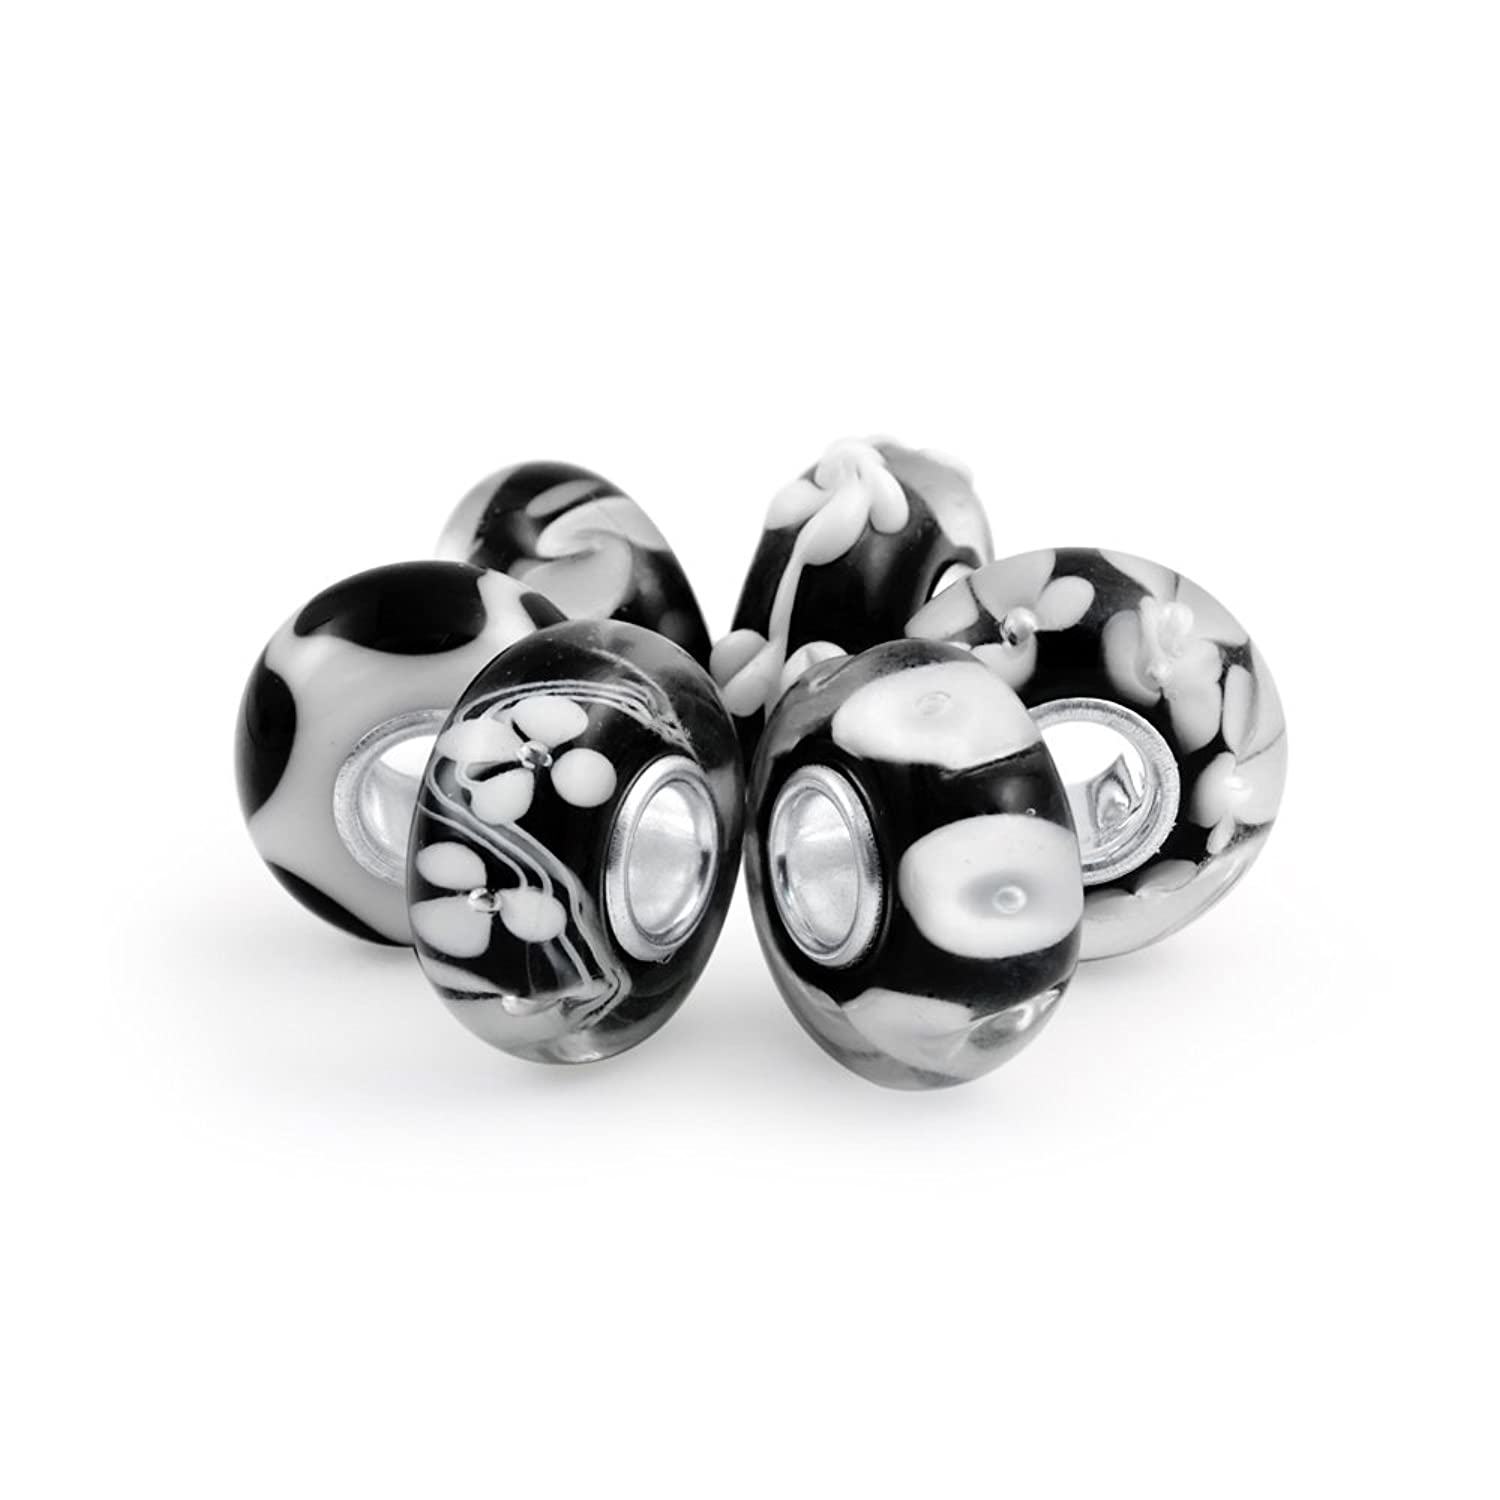 amazoncom bling jewelry set of six bundle black and white simulated onyx murano glass lampwork bead charm 925 sterling silver bead charms jewelry